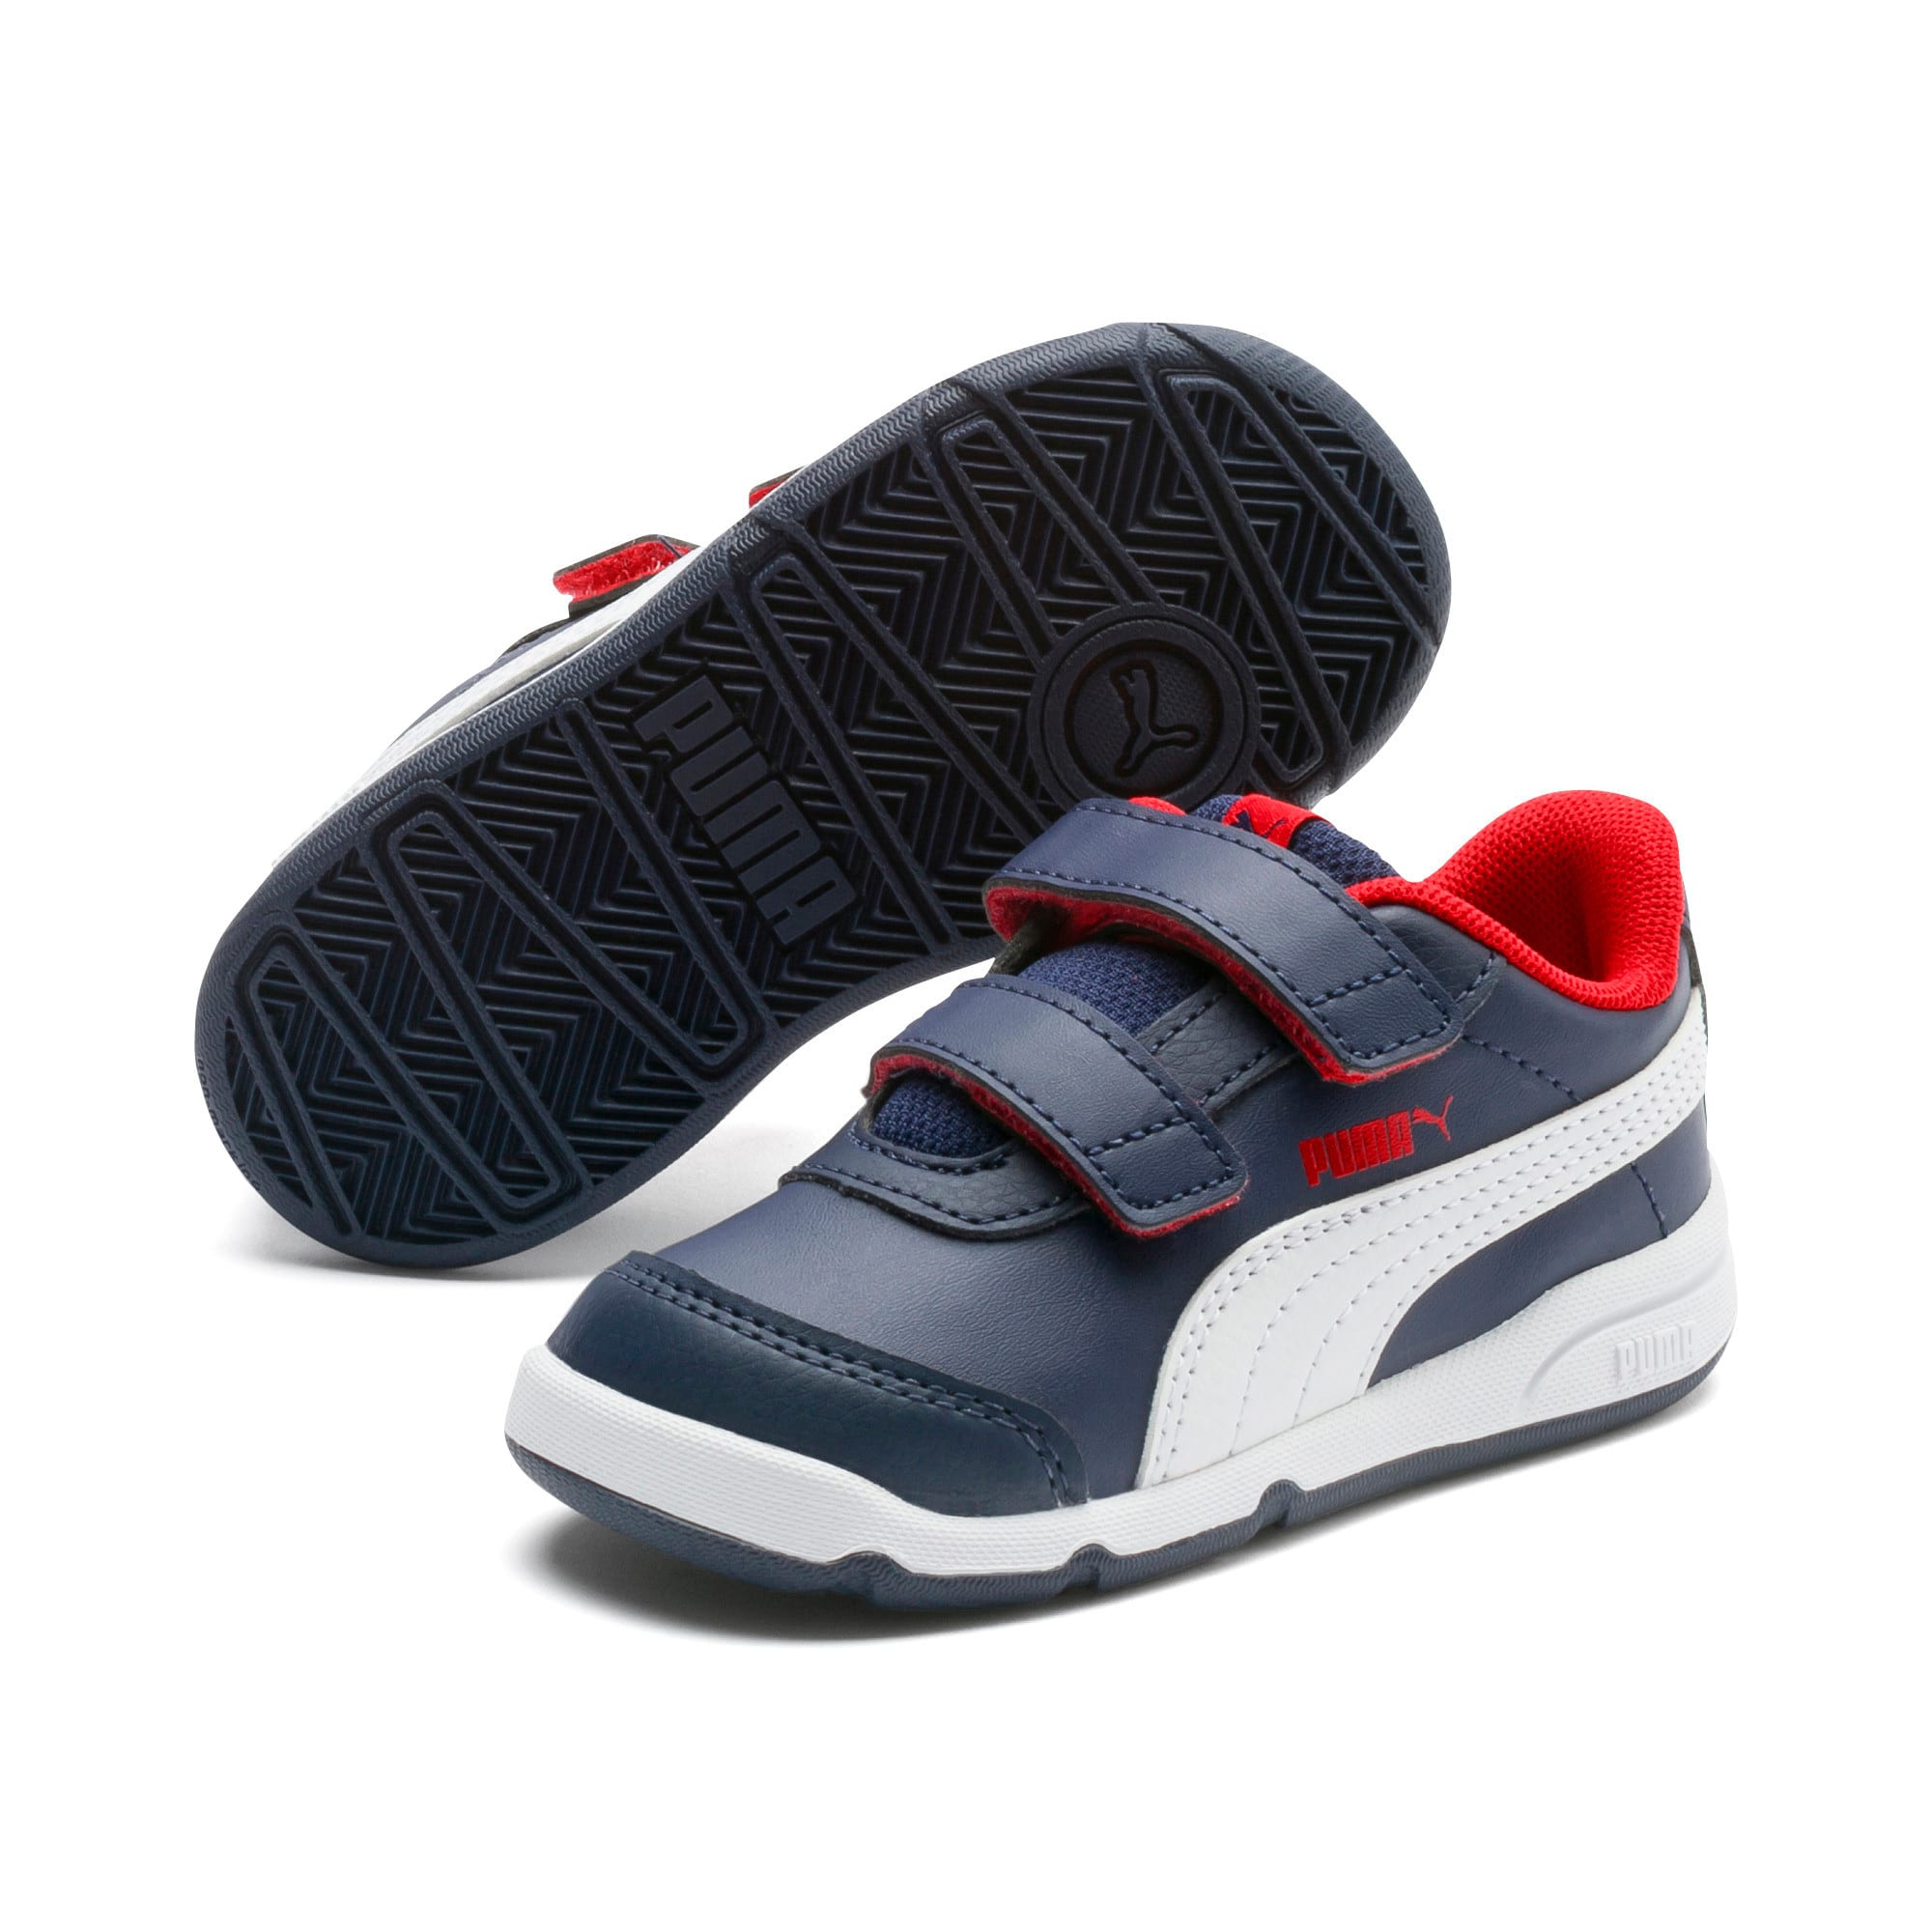 Thumbnail 2 of Stepfleex 2 SL VE V Babies' Trainers, Peacoat-White-Flame Scarlet, medium